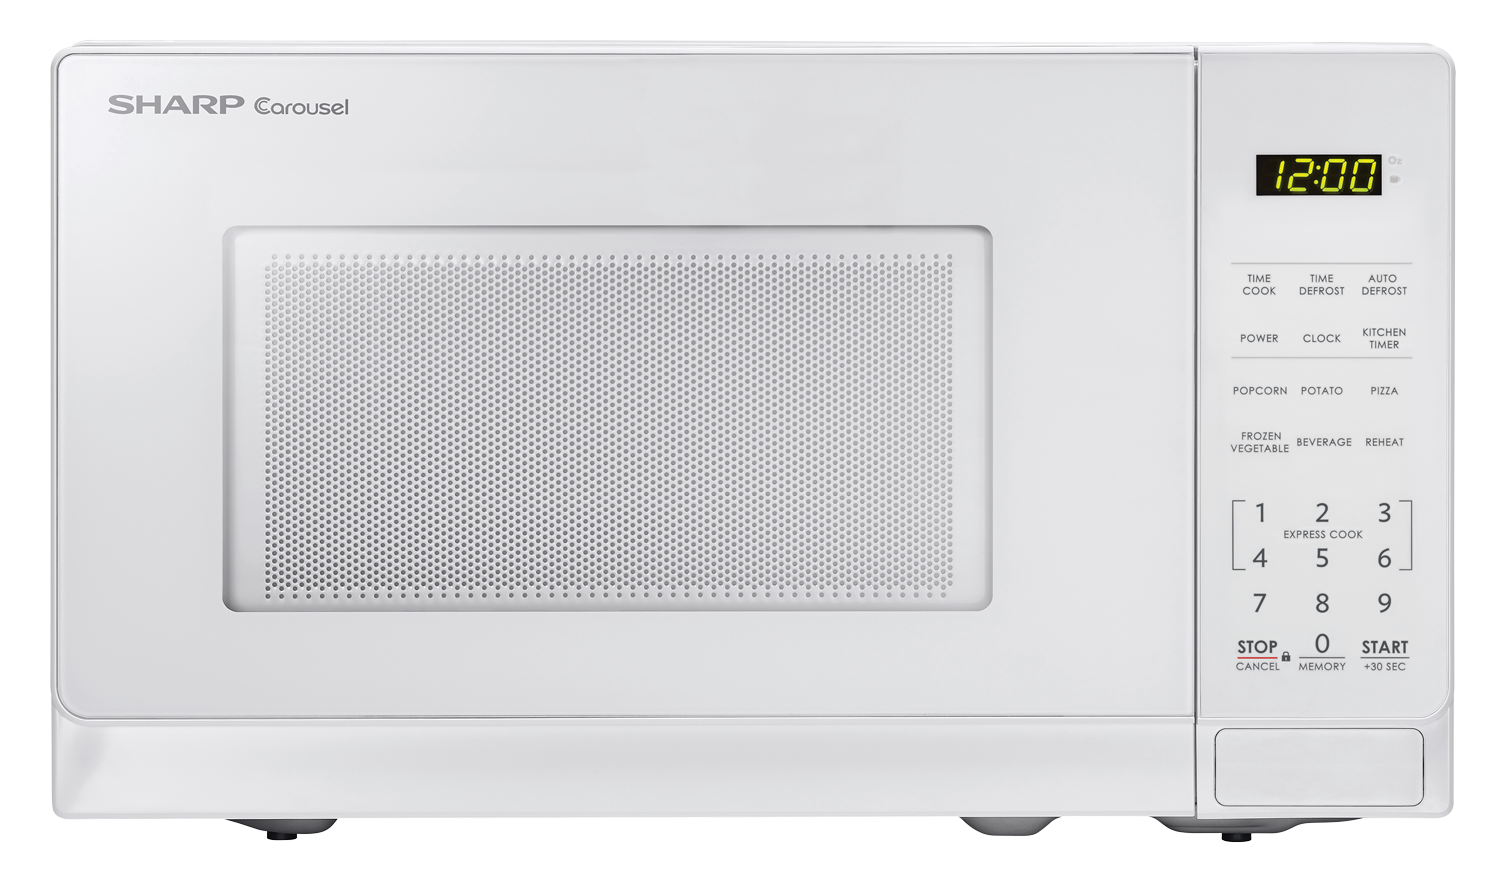 With Innovative Features Like One Touch Controls Auto Defrost And The Carousel Turntable System Sharp Smc0710bw White Microwave Make